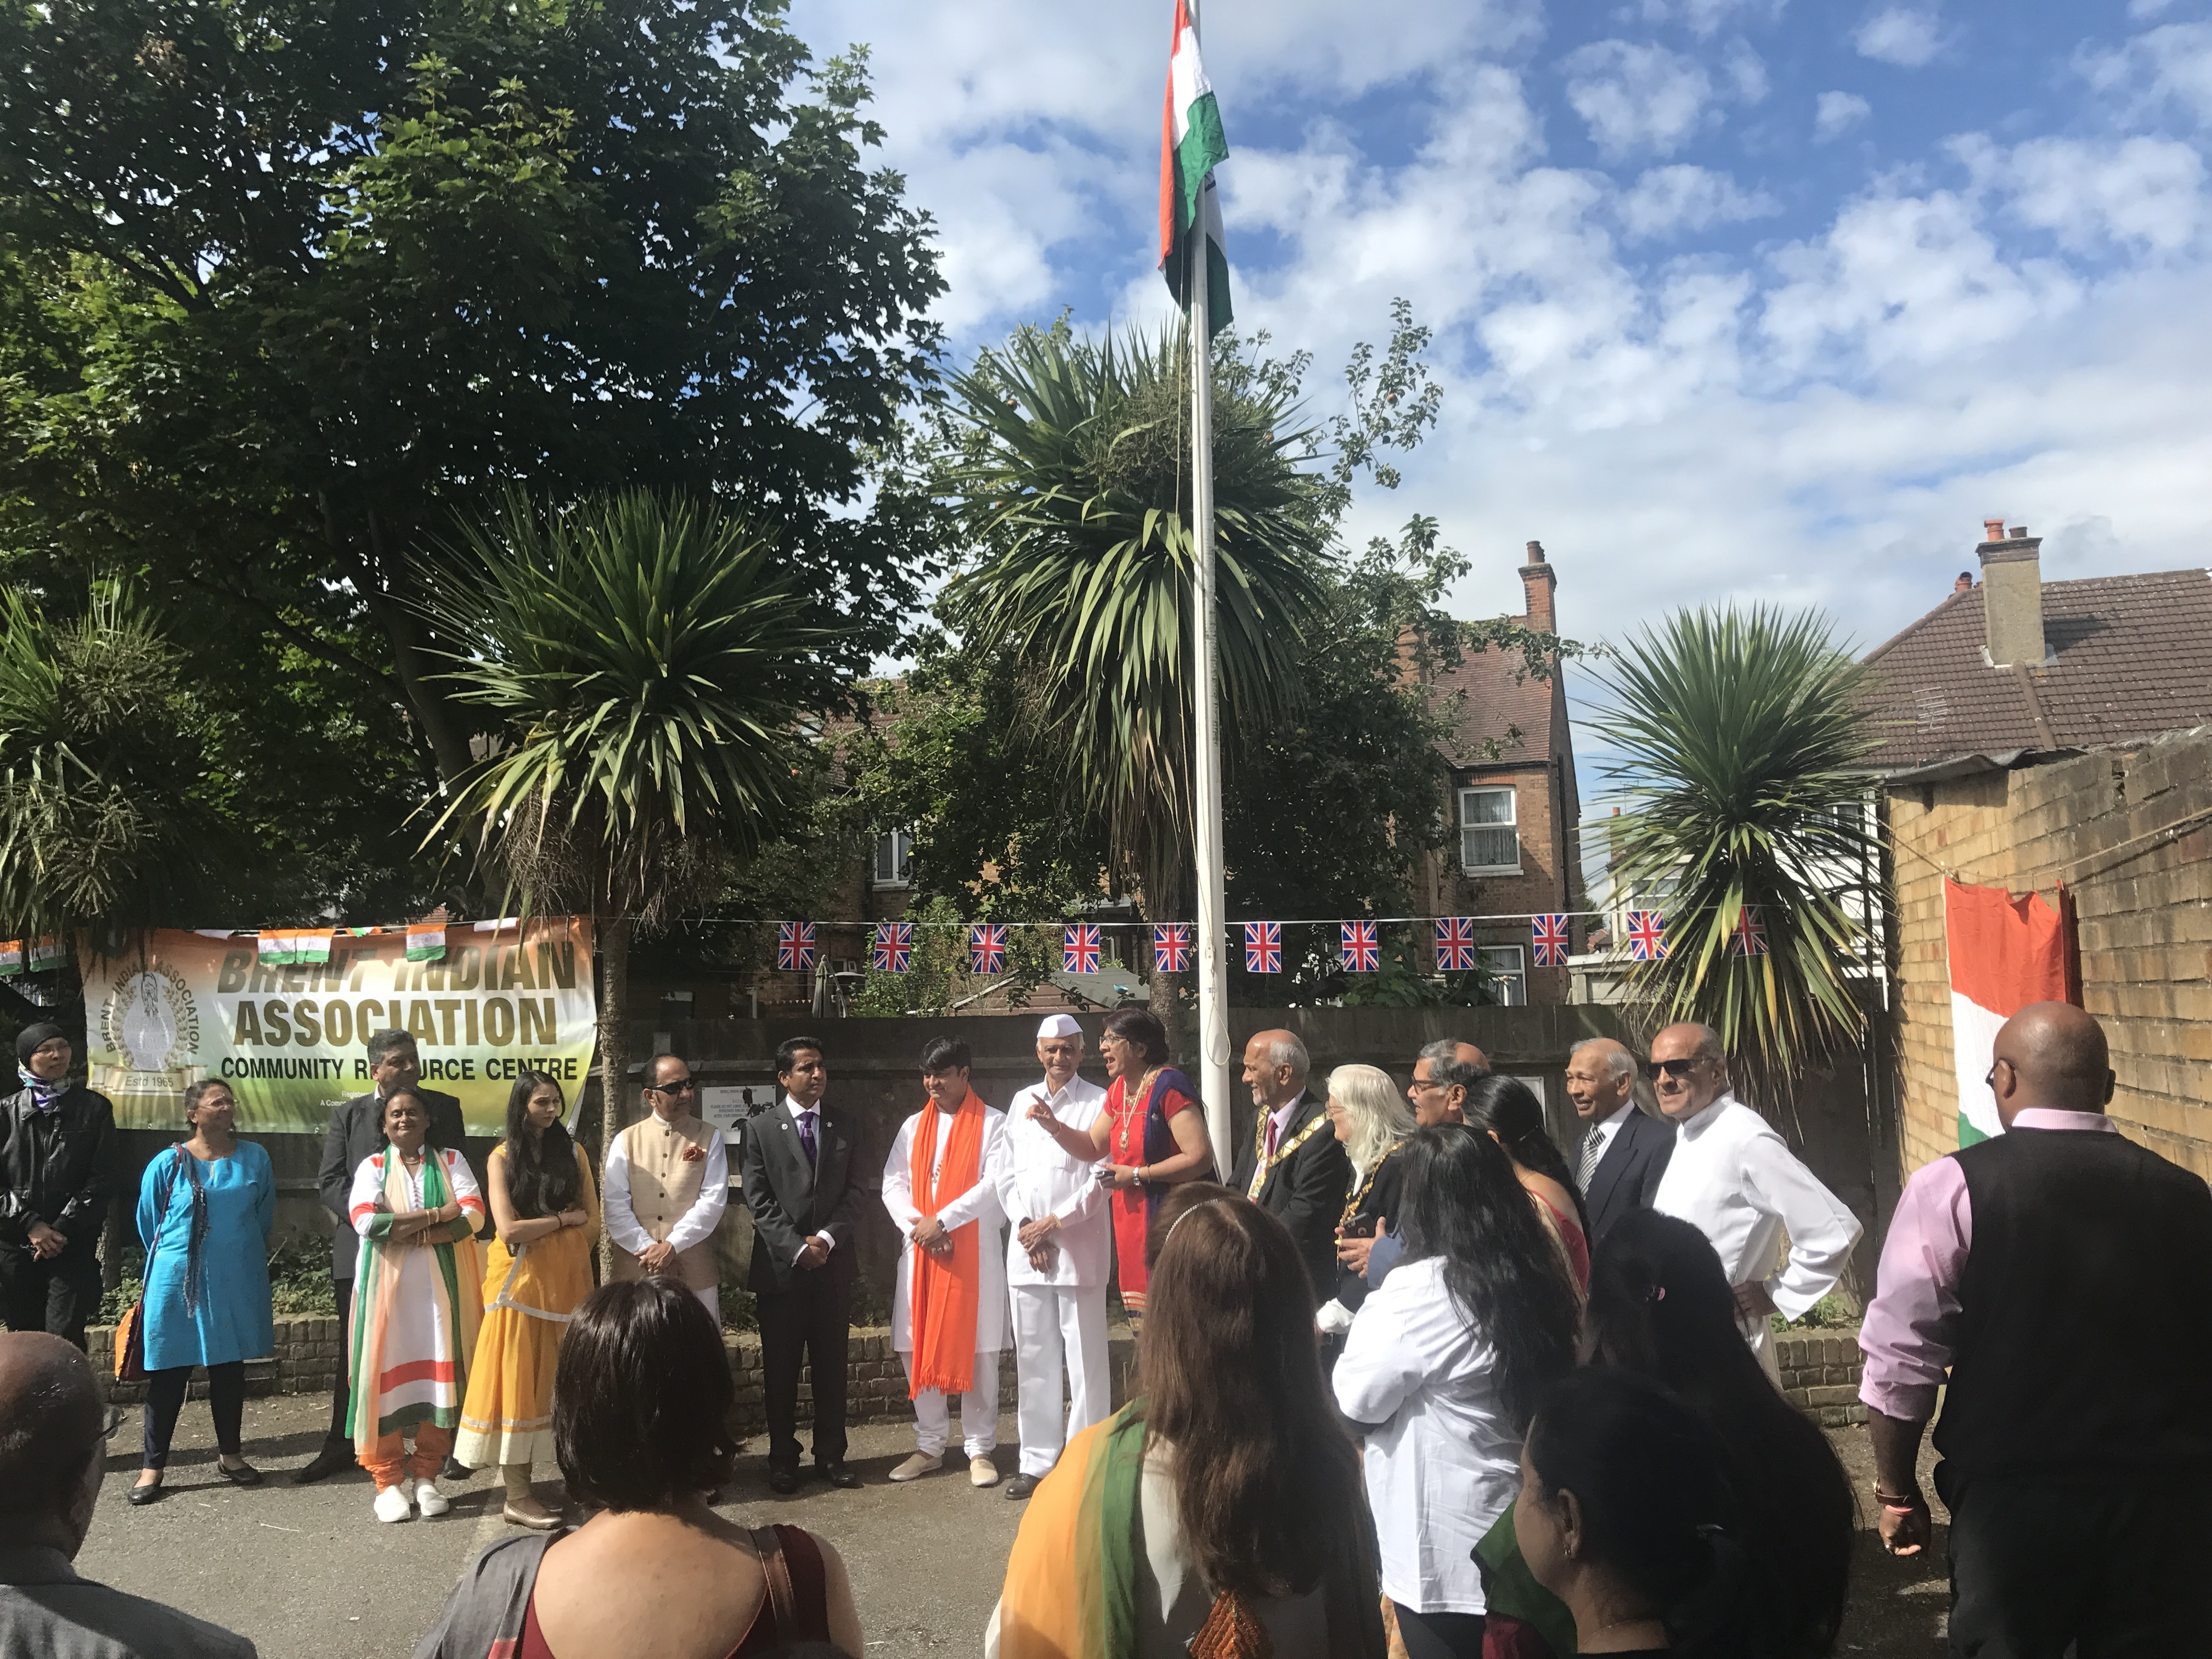 Property Hub celebrated India's 71st Independence Day along with Brent Indian Association and other local communities.